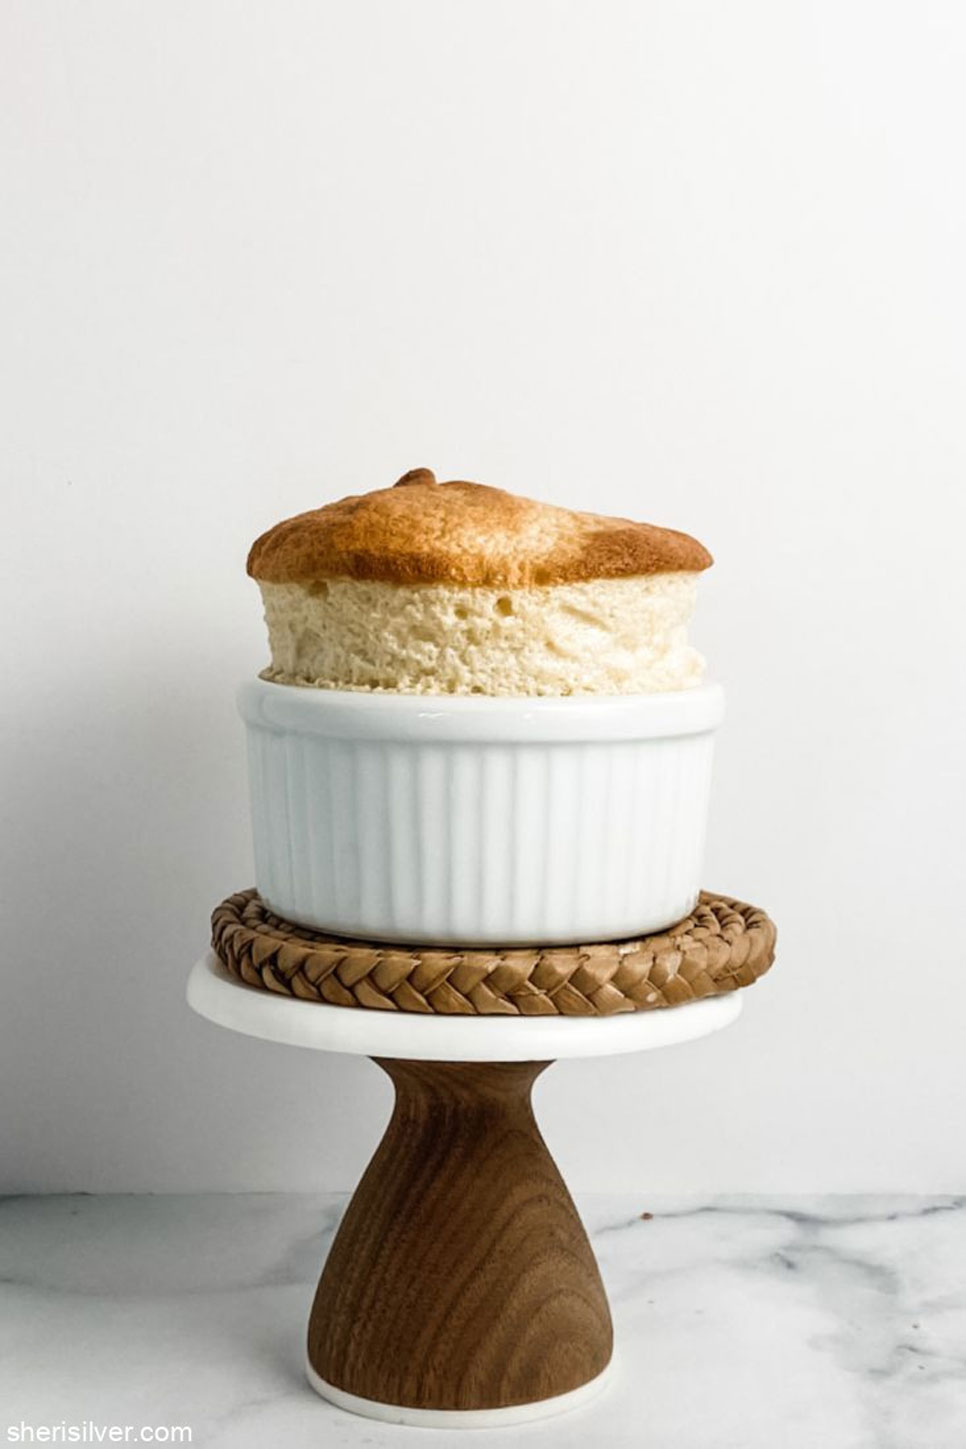 Sheri Silver shows us how to make a maple soufflé with only 2 ingredients